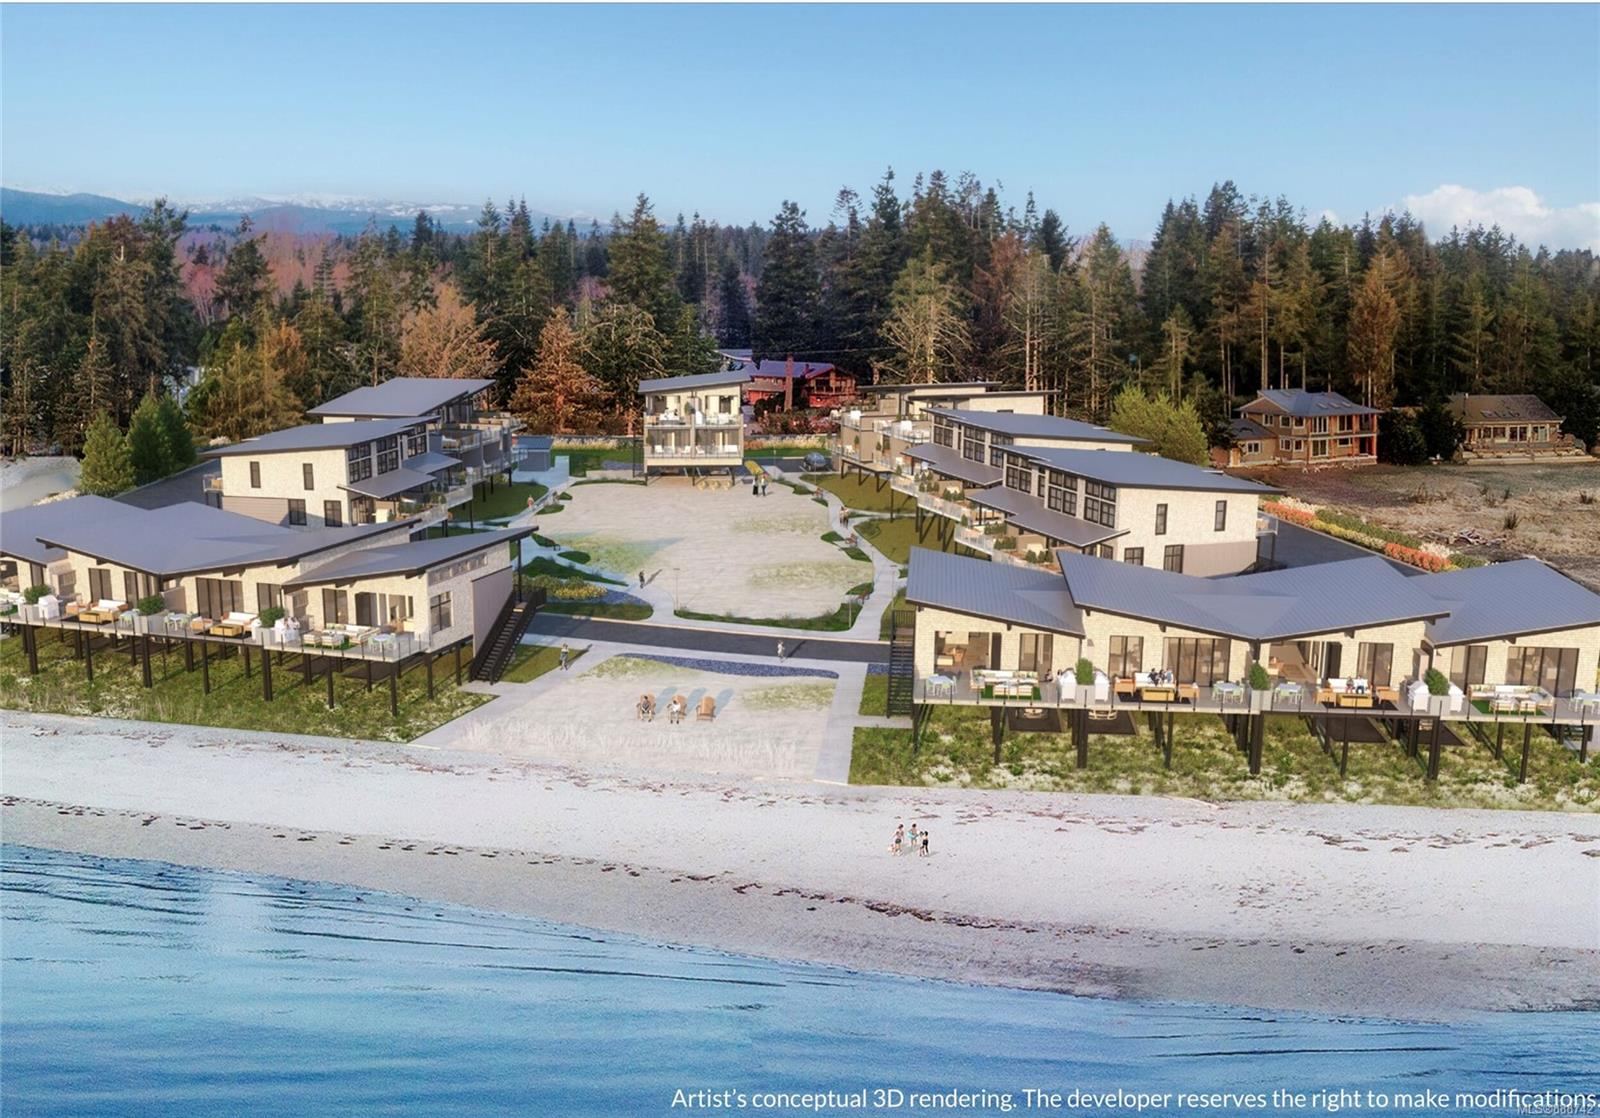 Presale assignment opportunity in sold out Beach House at Saratoga. Vancouver Island's fastest selling waterfront community. The Beach House is a rare collection of only 30 luxury built Beach Homes, located on over 3 acres of walk on waterfront on the white sands of Saratoga Beach in the Comox Valley. Unit A 6 is a 1067 sqft, 2 bedroom, 2.5 bath home with southern exposure & stunning views from the master suites located on the top floor up the north coast to the coastal mountain range. The main floor offers ocean views from the large patio off the living room and is steps to the beach. Deluxe finishes throughout include, Air Conditioning, Frigidaire Professional Series Stainless Appliances with gas ranges, gas fireplaces with custom tile surround, spa inspired baths,  quartz counter tops, outdoor showers for sandy toes and pets and much more.  Full ownership strata community perfect as 2nd home/vacant home & potential to cover cost of ownership re on-site vacation management program.